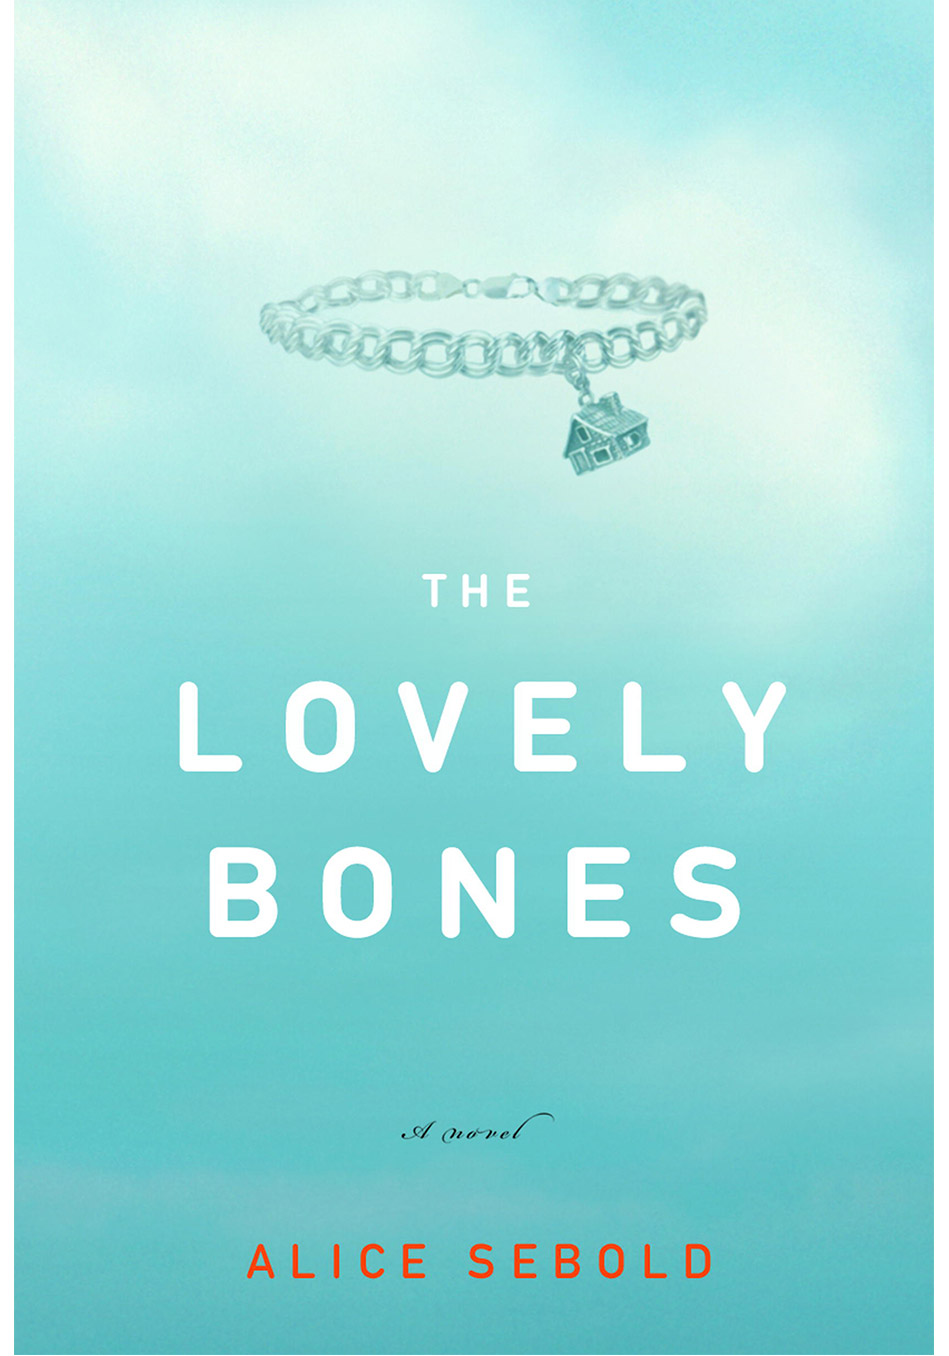 Books That Defined A Generation The Lovely Bones